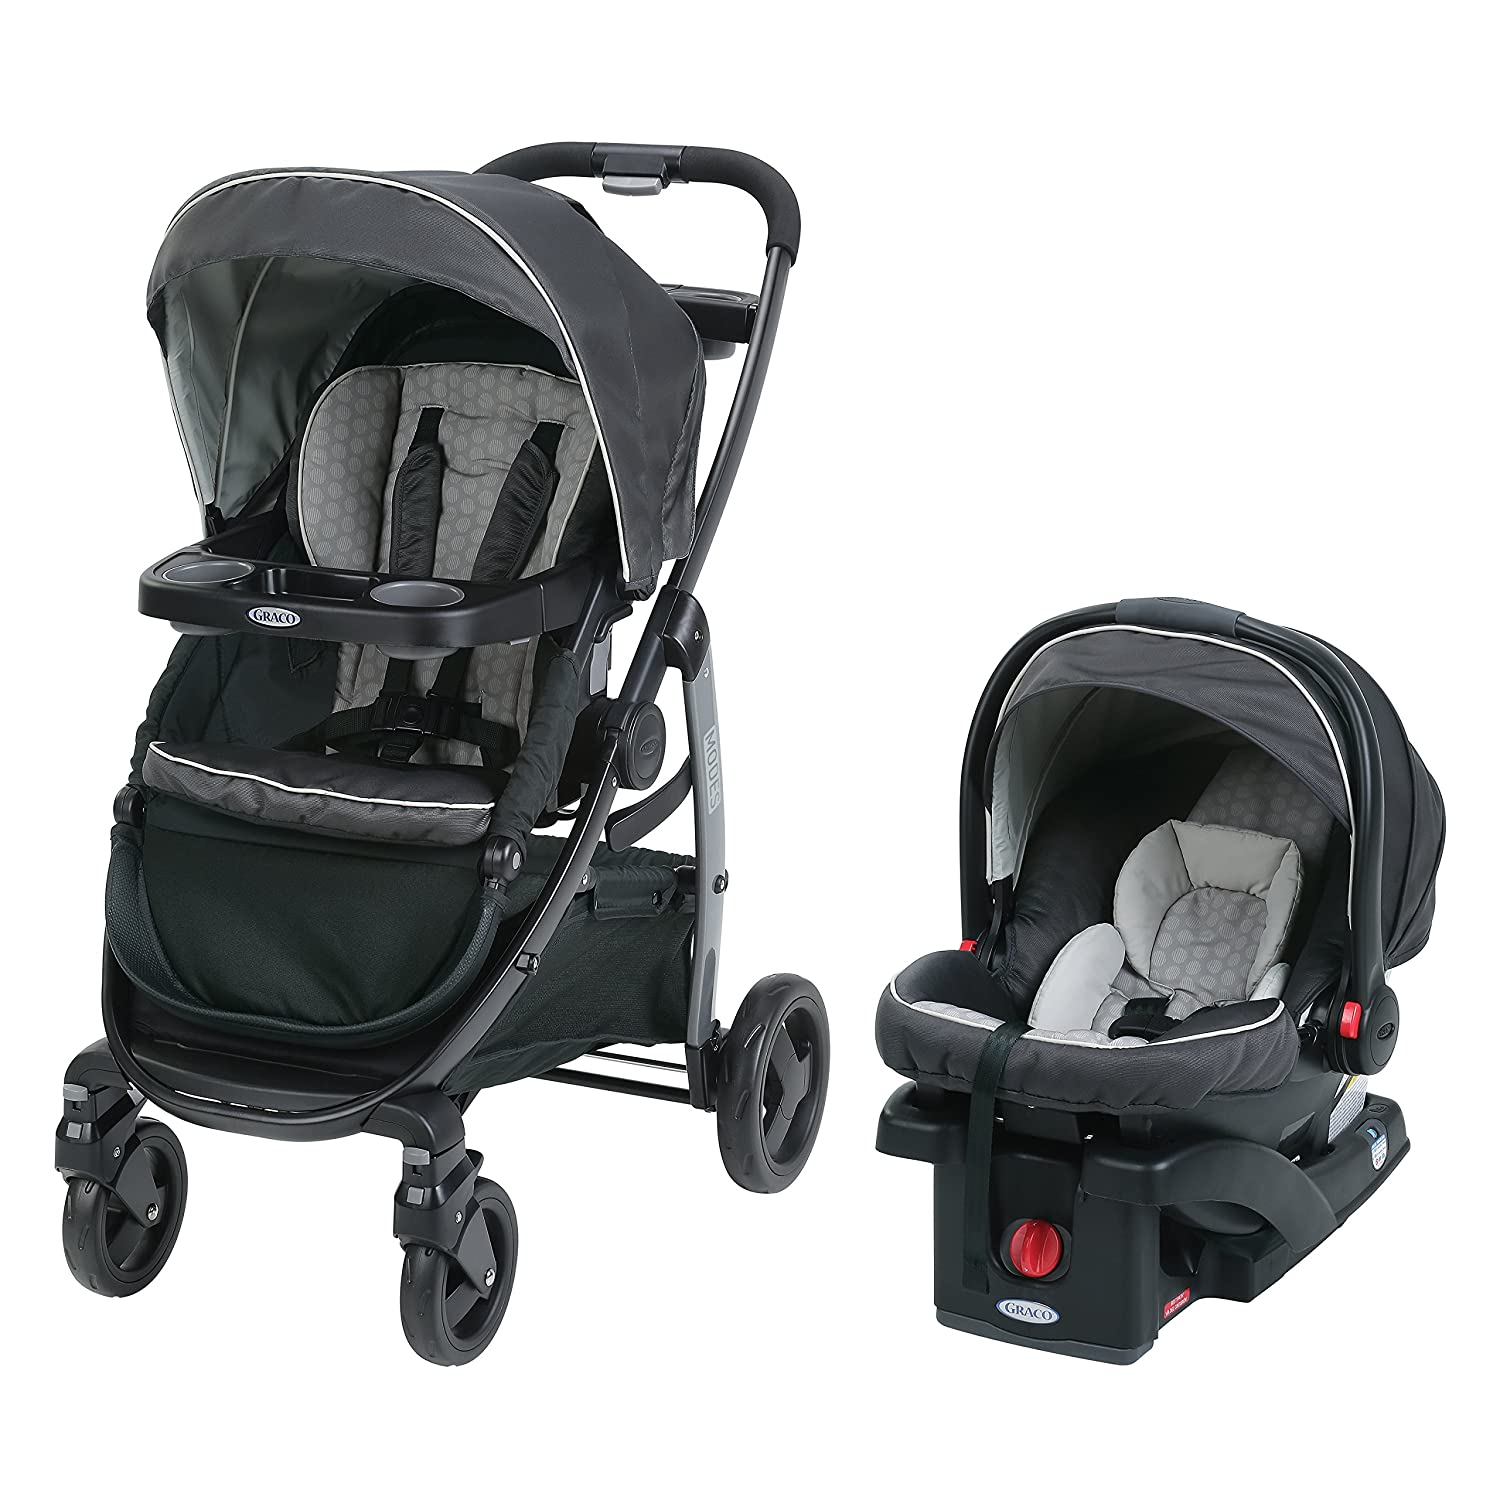 Amazon.com : Graco Modes Travel System (Stroller and Car Seat), Davis : Baby